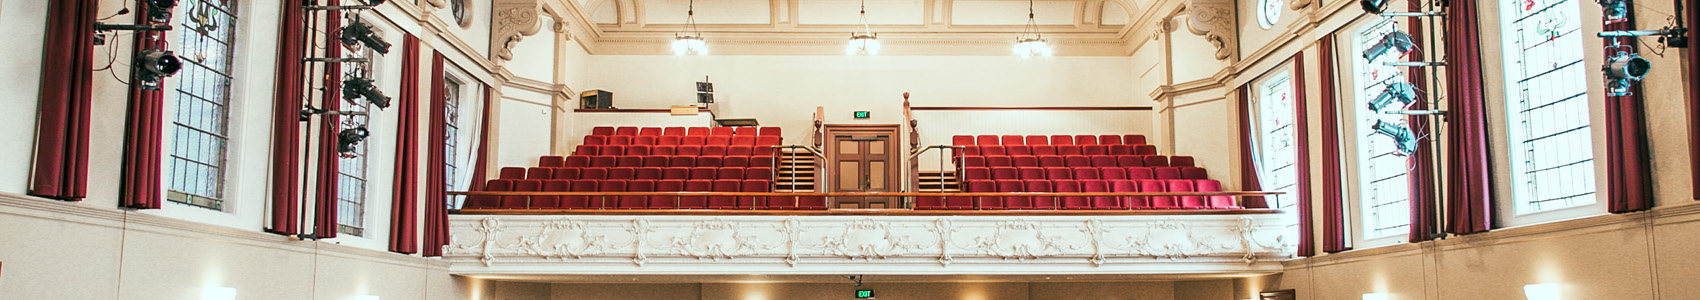 Concert Chamber, Auckland Town Hall